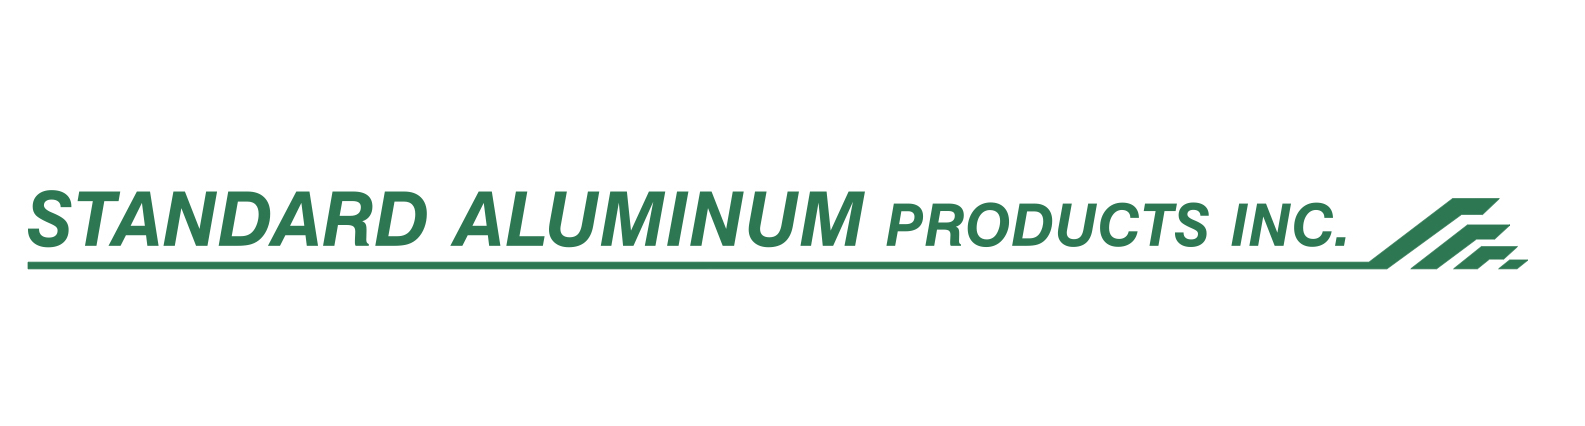 Standard Aluminum Products Inc.